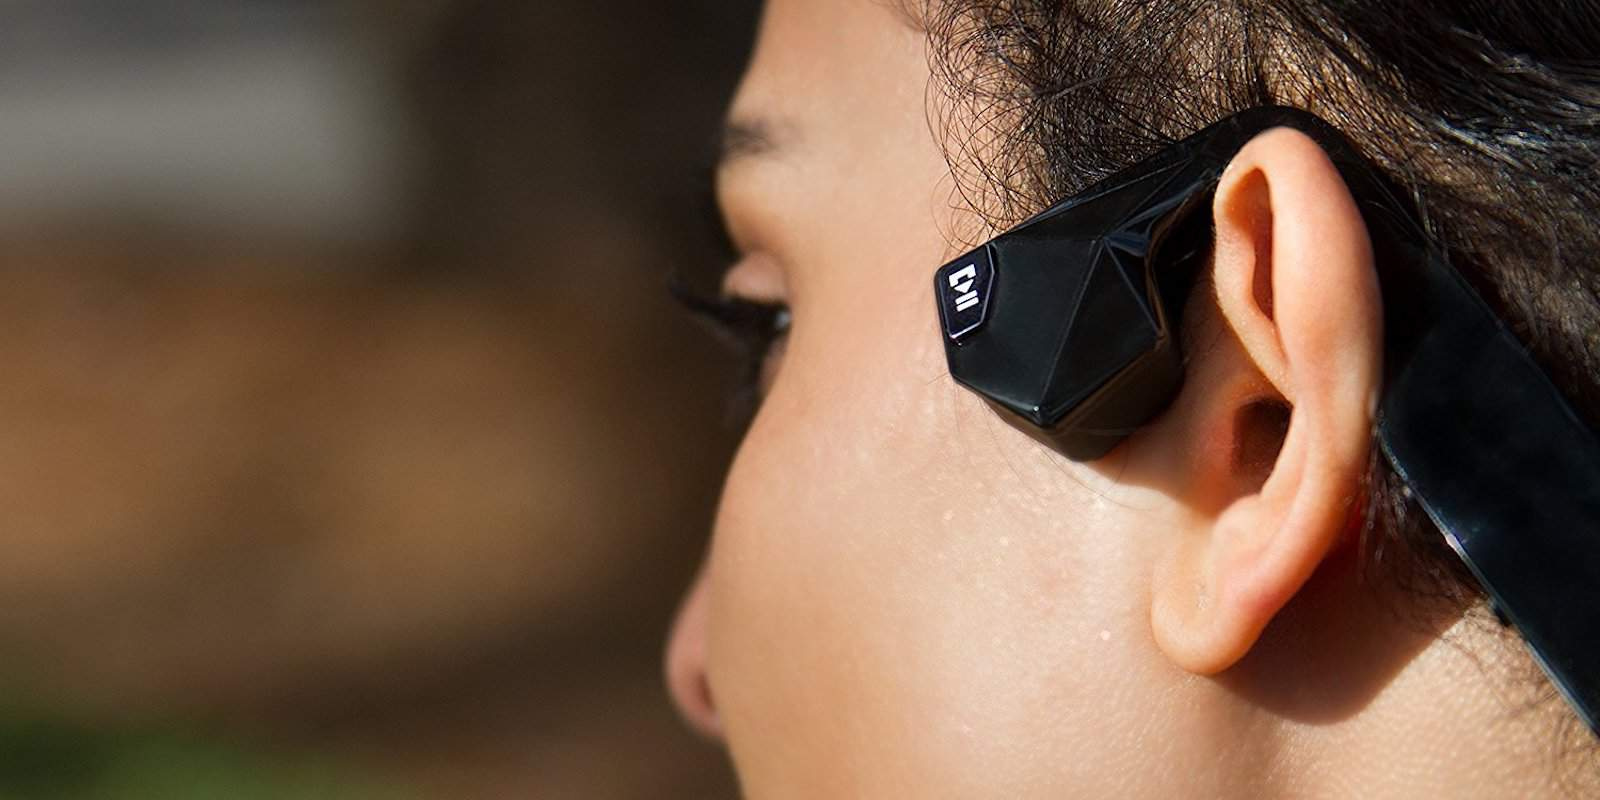 These bone-conduction headphones might be the future of personal audio.